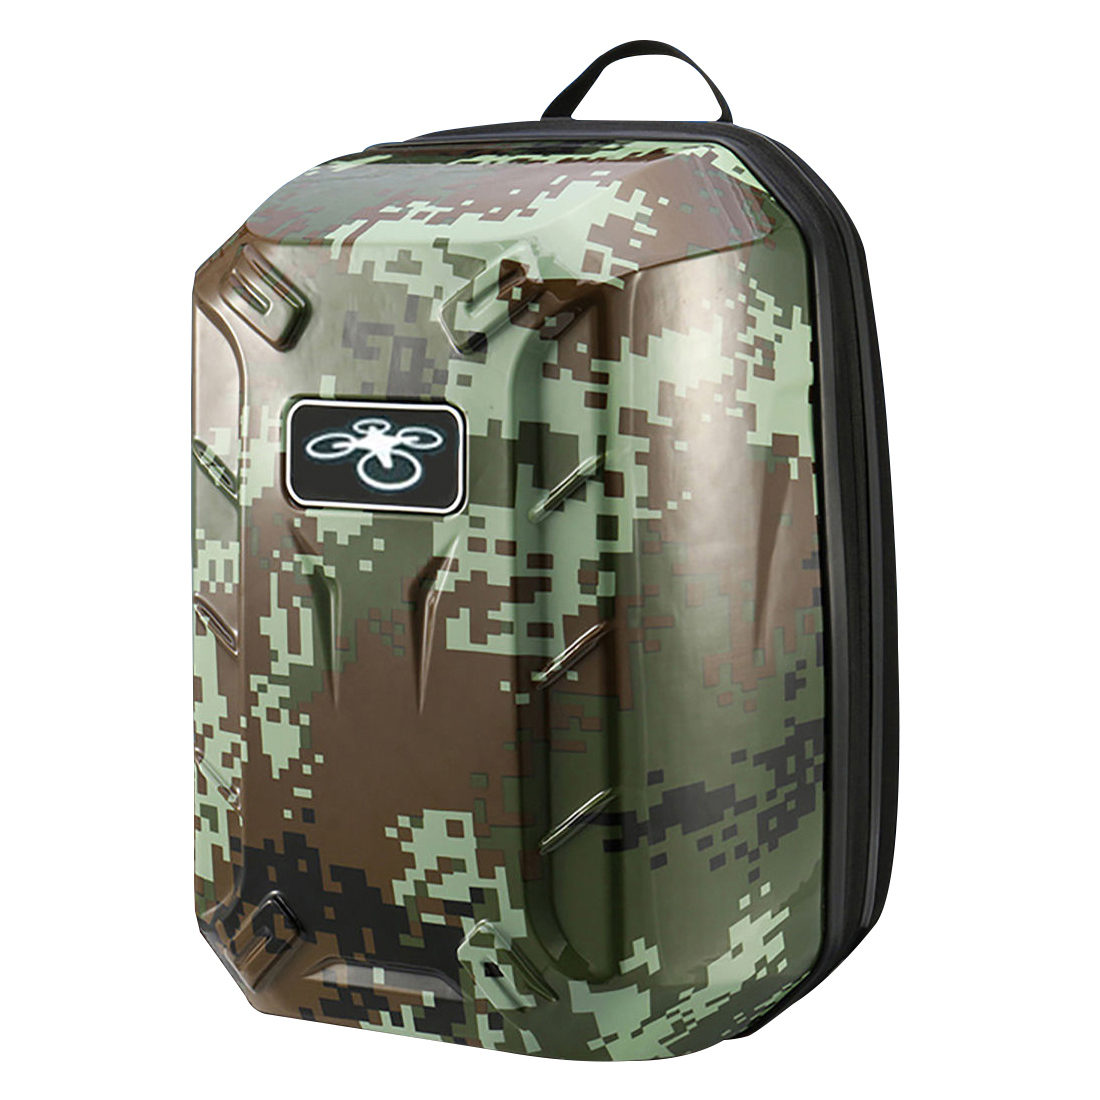 5) TEXU ing Waterproof Backpack Shoulder Bag Hard Shell Case For DJI Phantom 3Color:Army green easttowest dji spark accessories hard shell dji spark backpack waterproof storage bag for spark body remote all accessories